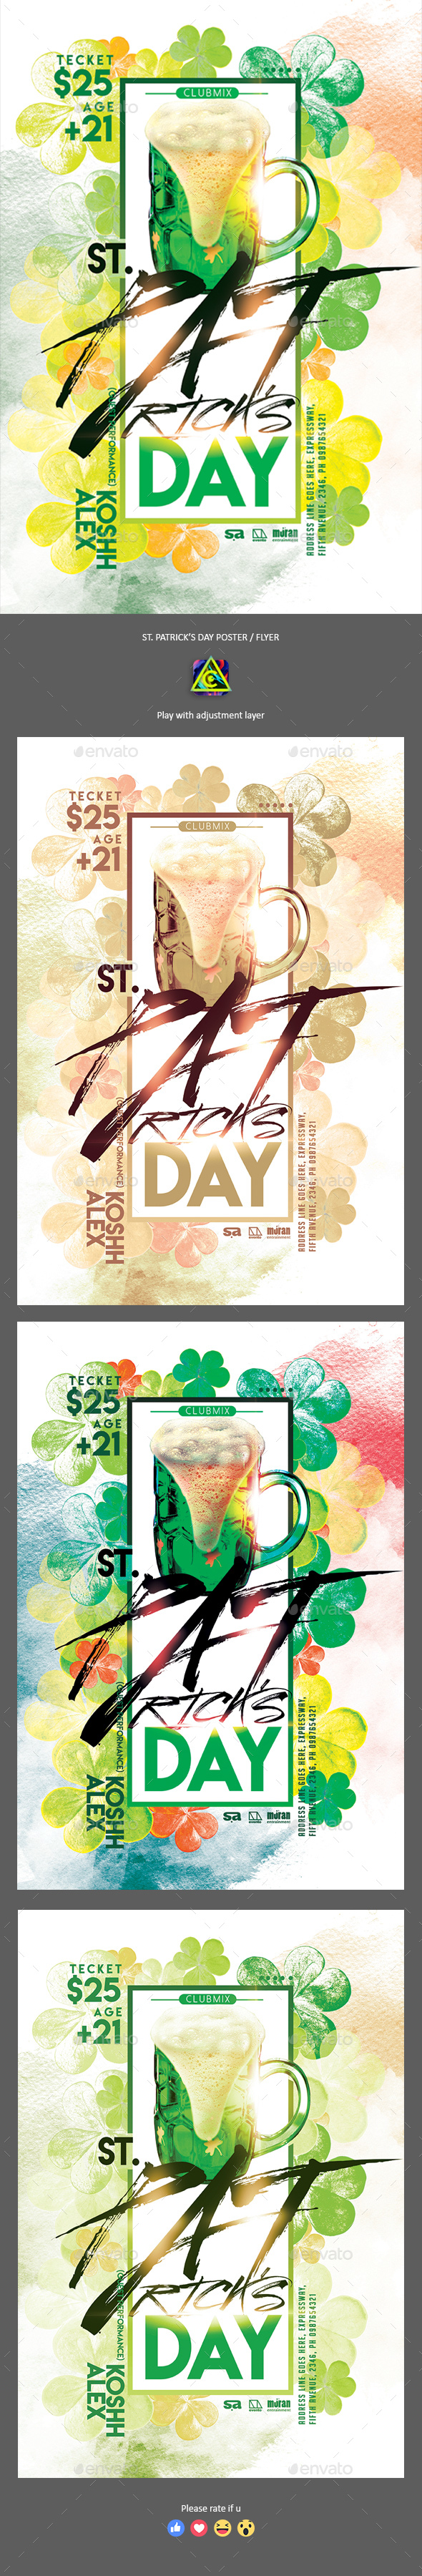 St. Patrick's Day Poster / Flyer - Clubs & Parties Events